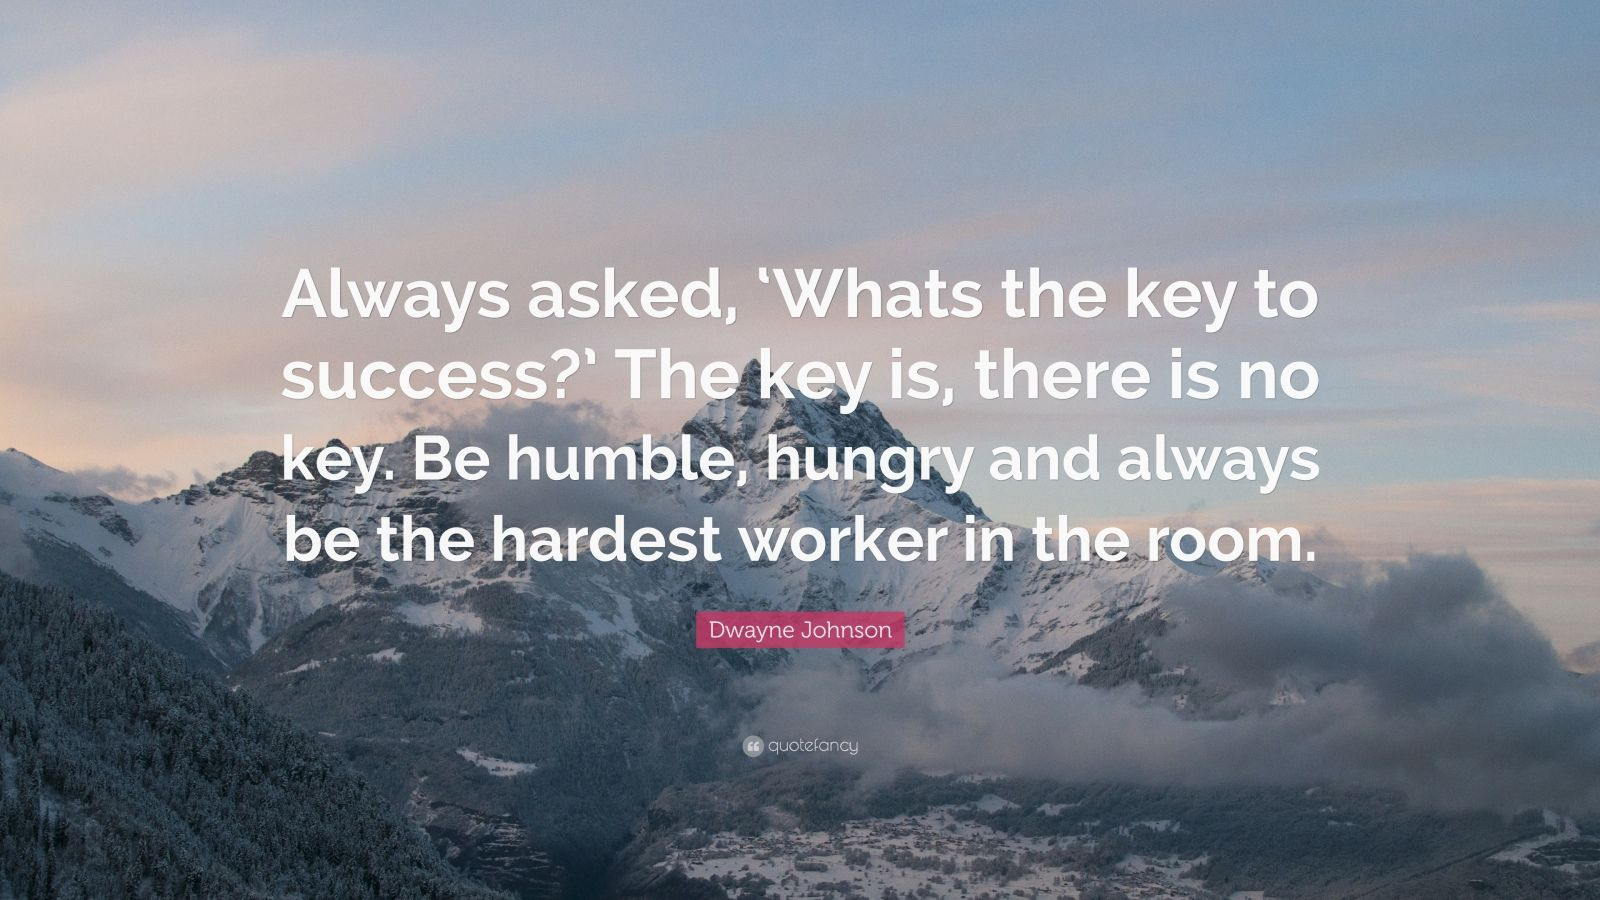 "Motivational Bodybuilding Quotes: ""Always asked, 'Whats the key to success?' The key is, there is no key. Be humble, hungry and always be the hardest worker in the room."" — Dwayne Johnson"